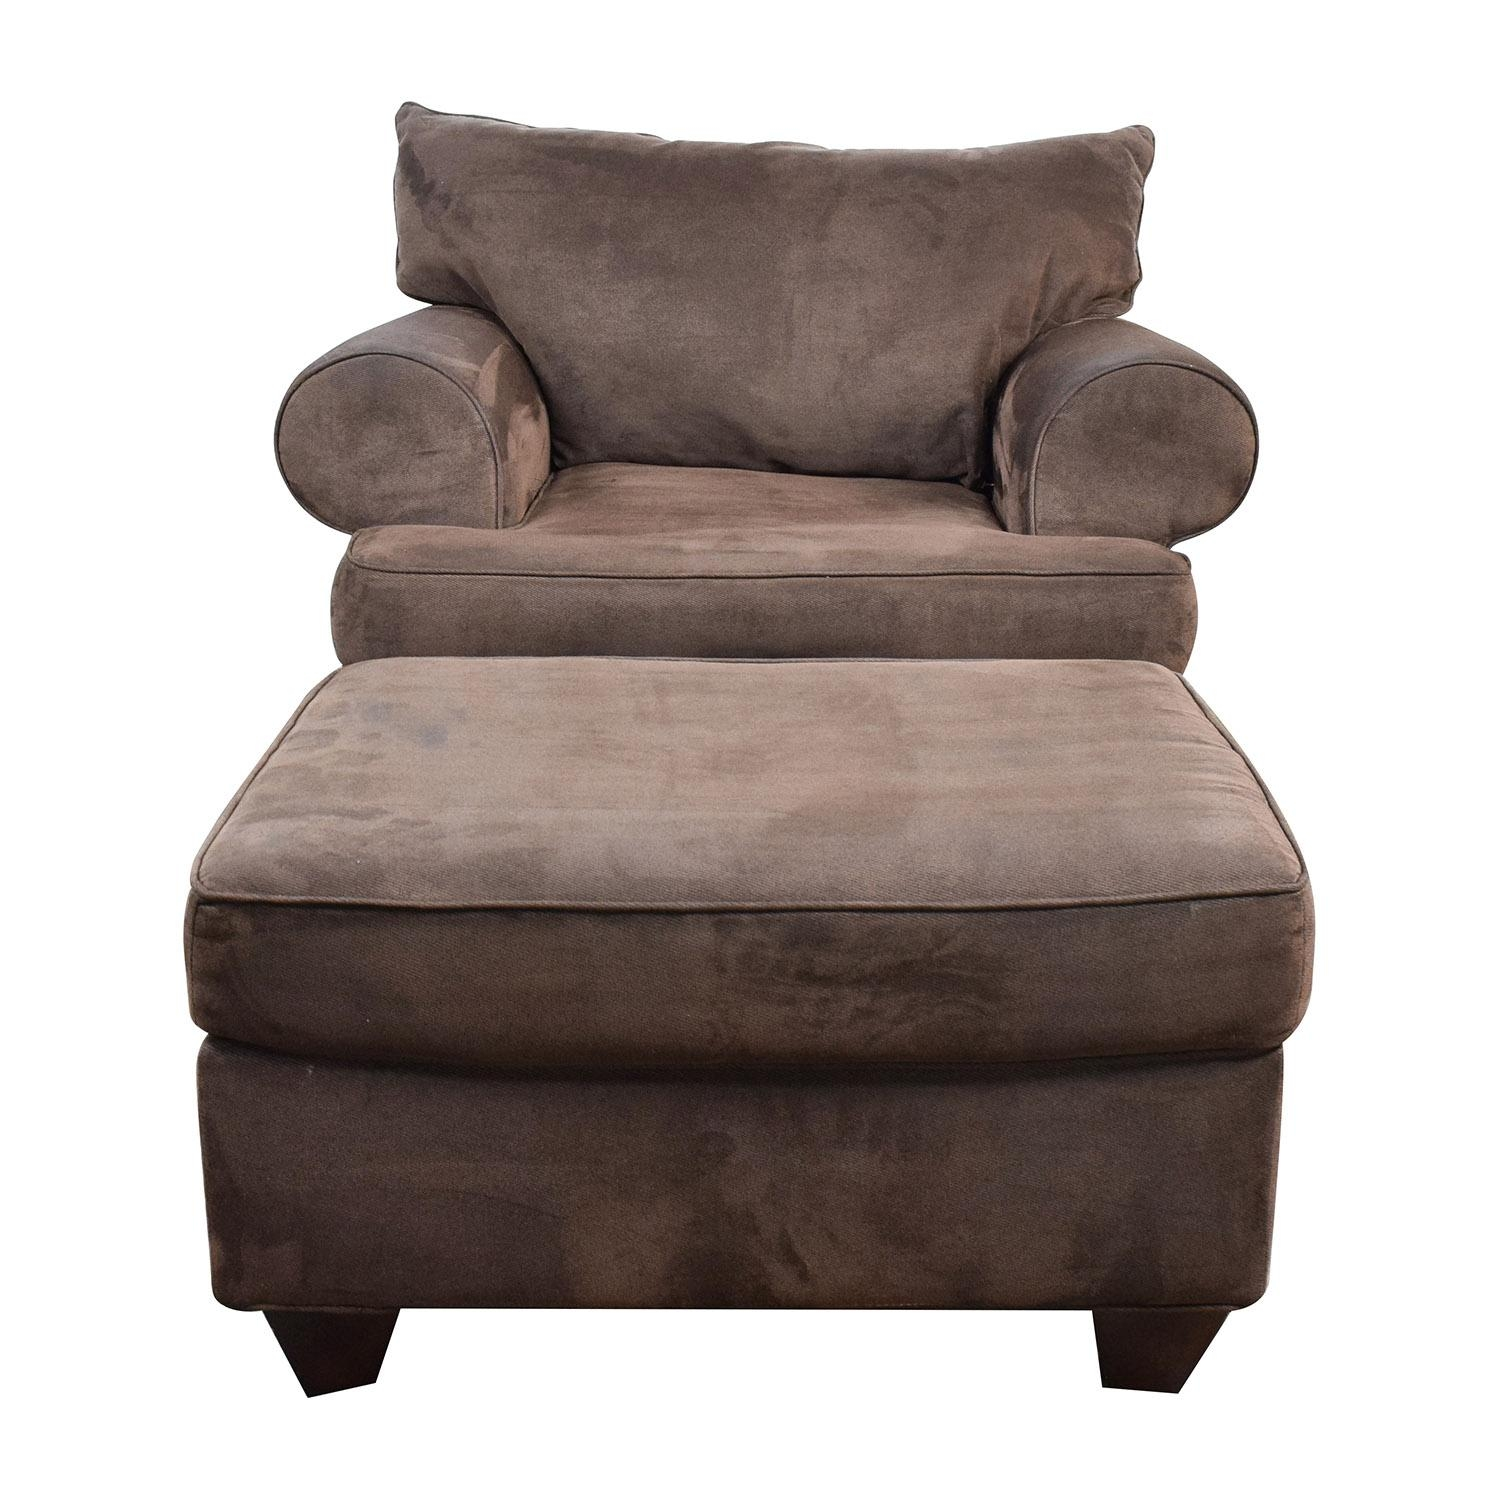 67% Off - Dark Brown Sofa Chair With Ottoman / Chairs for Sofa Chair With Ottoman